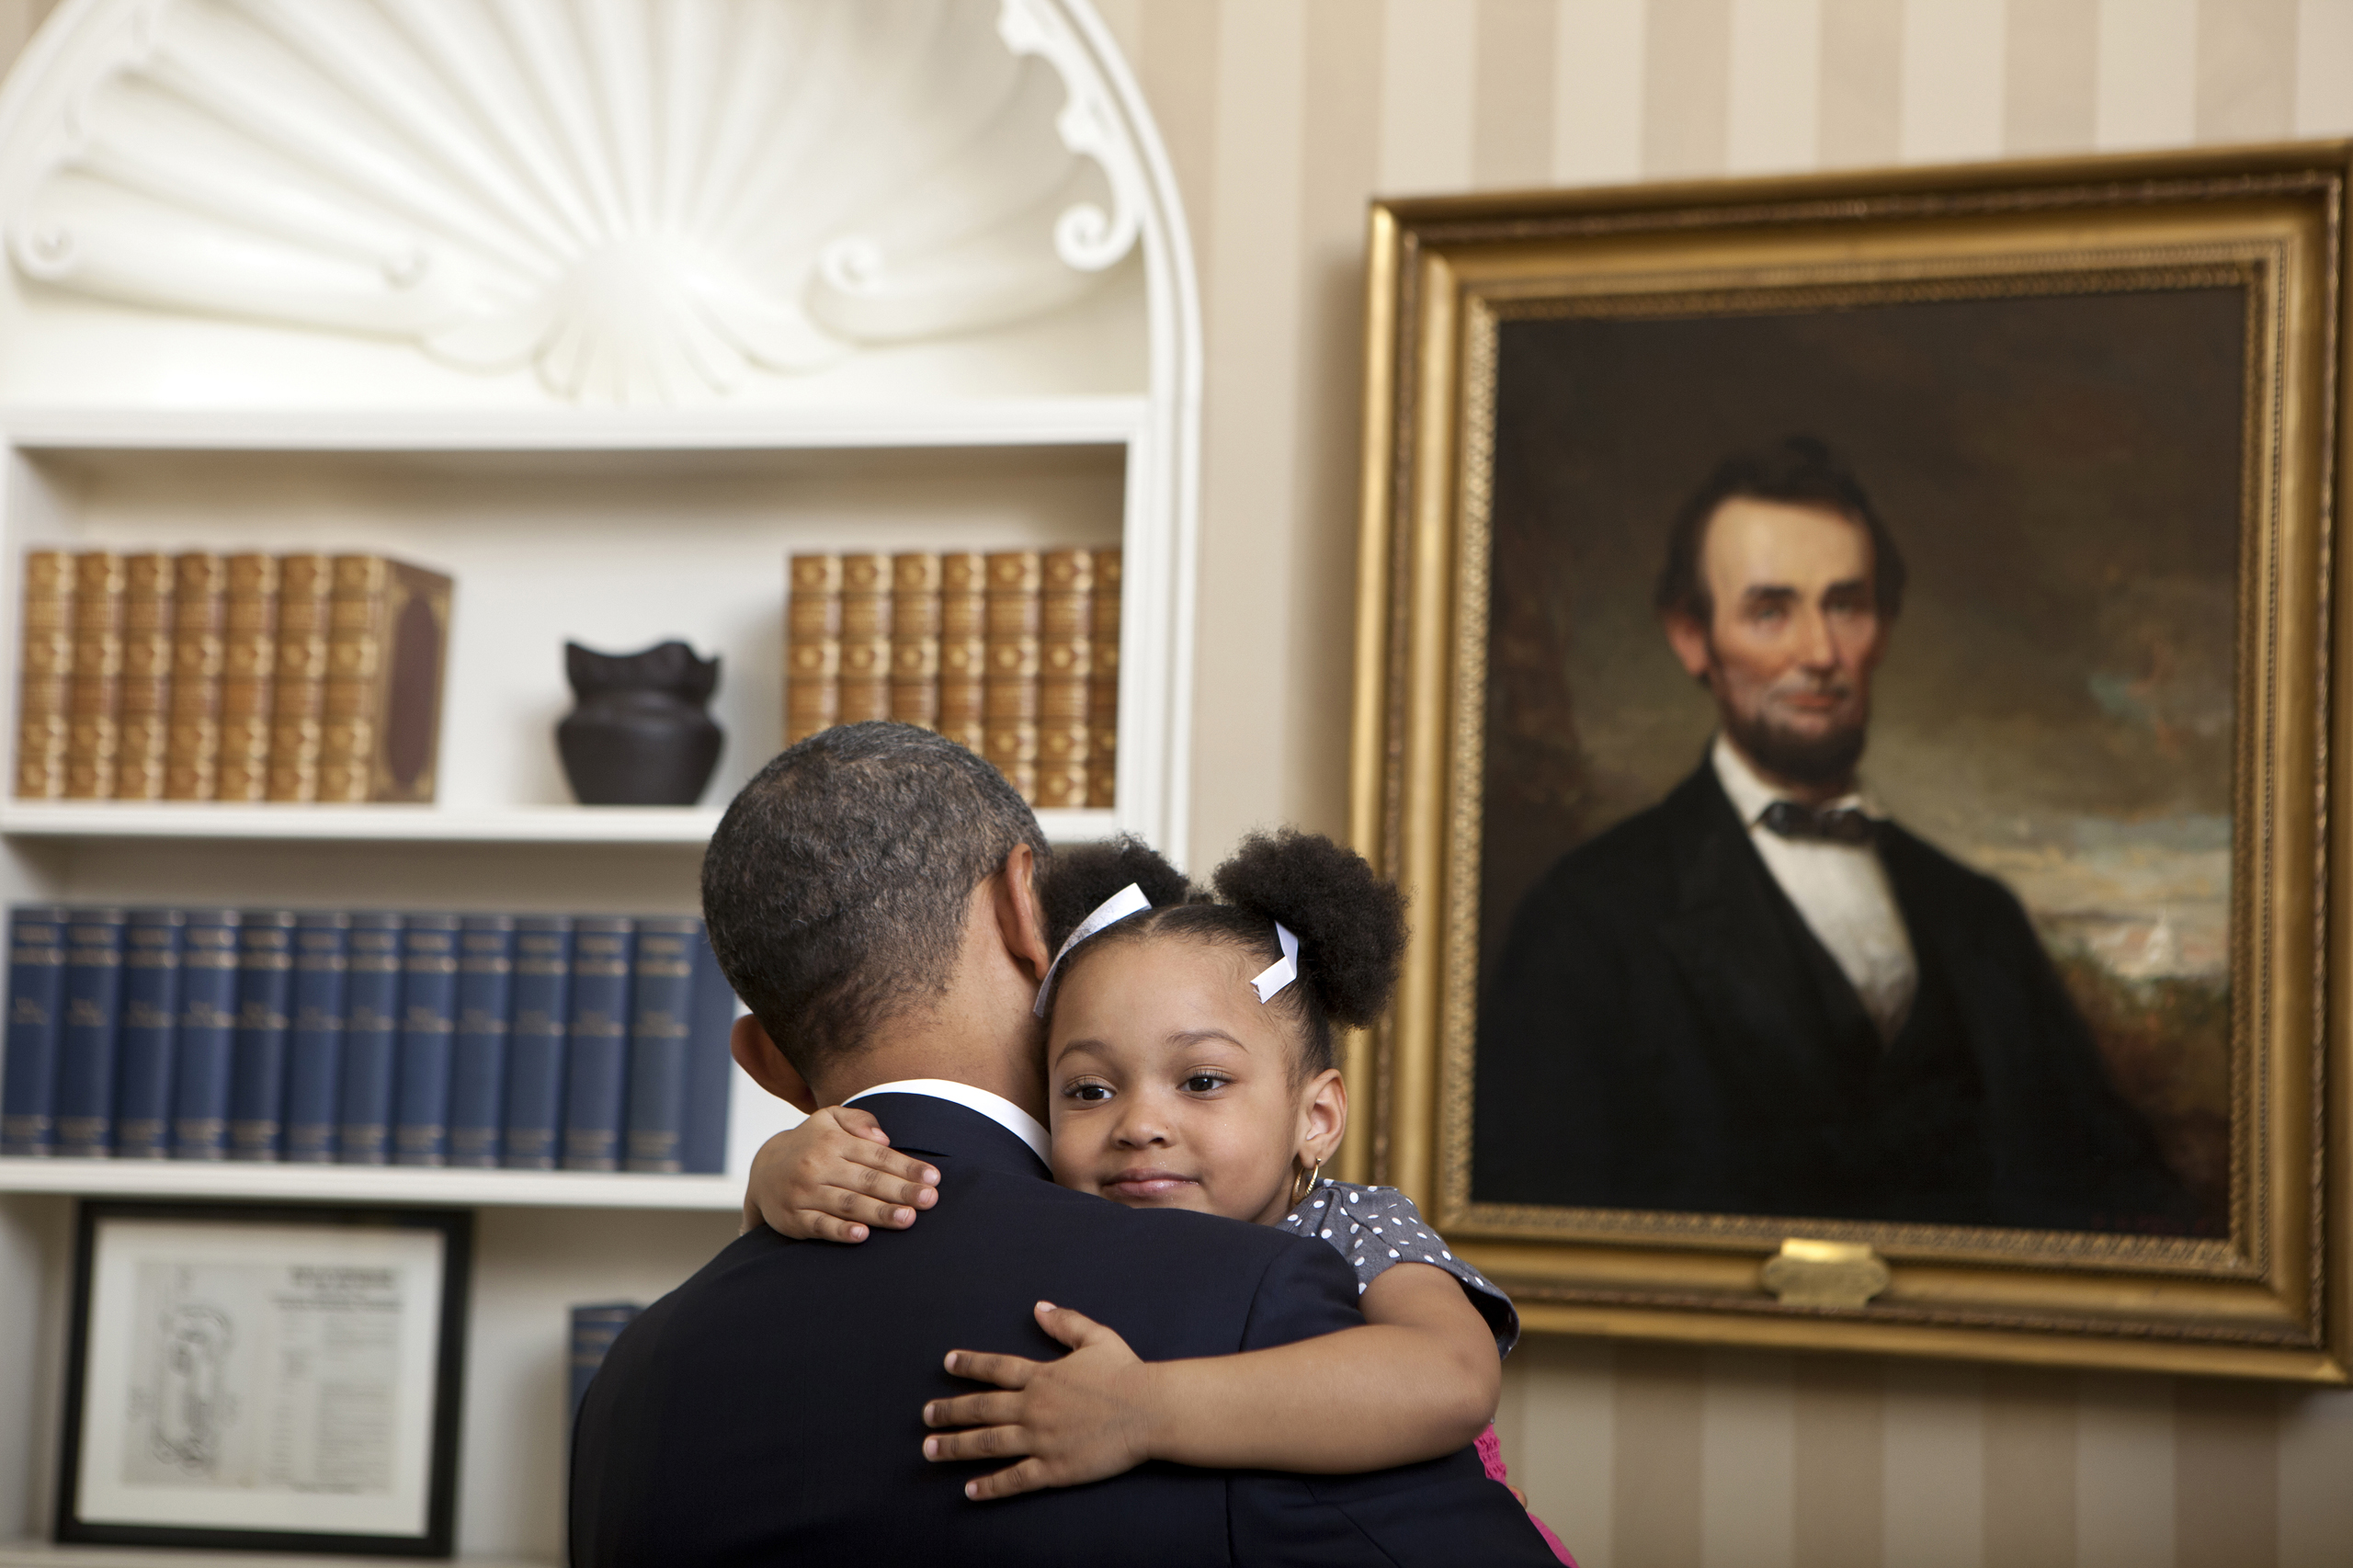 Obama holds Arianna Holmes, 3, before taking a departure photo with members of her family in the Oval Office on Feb. 1, 2012.